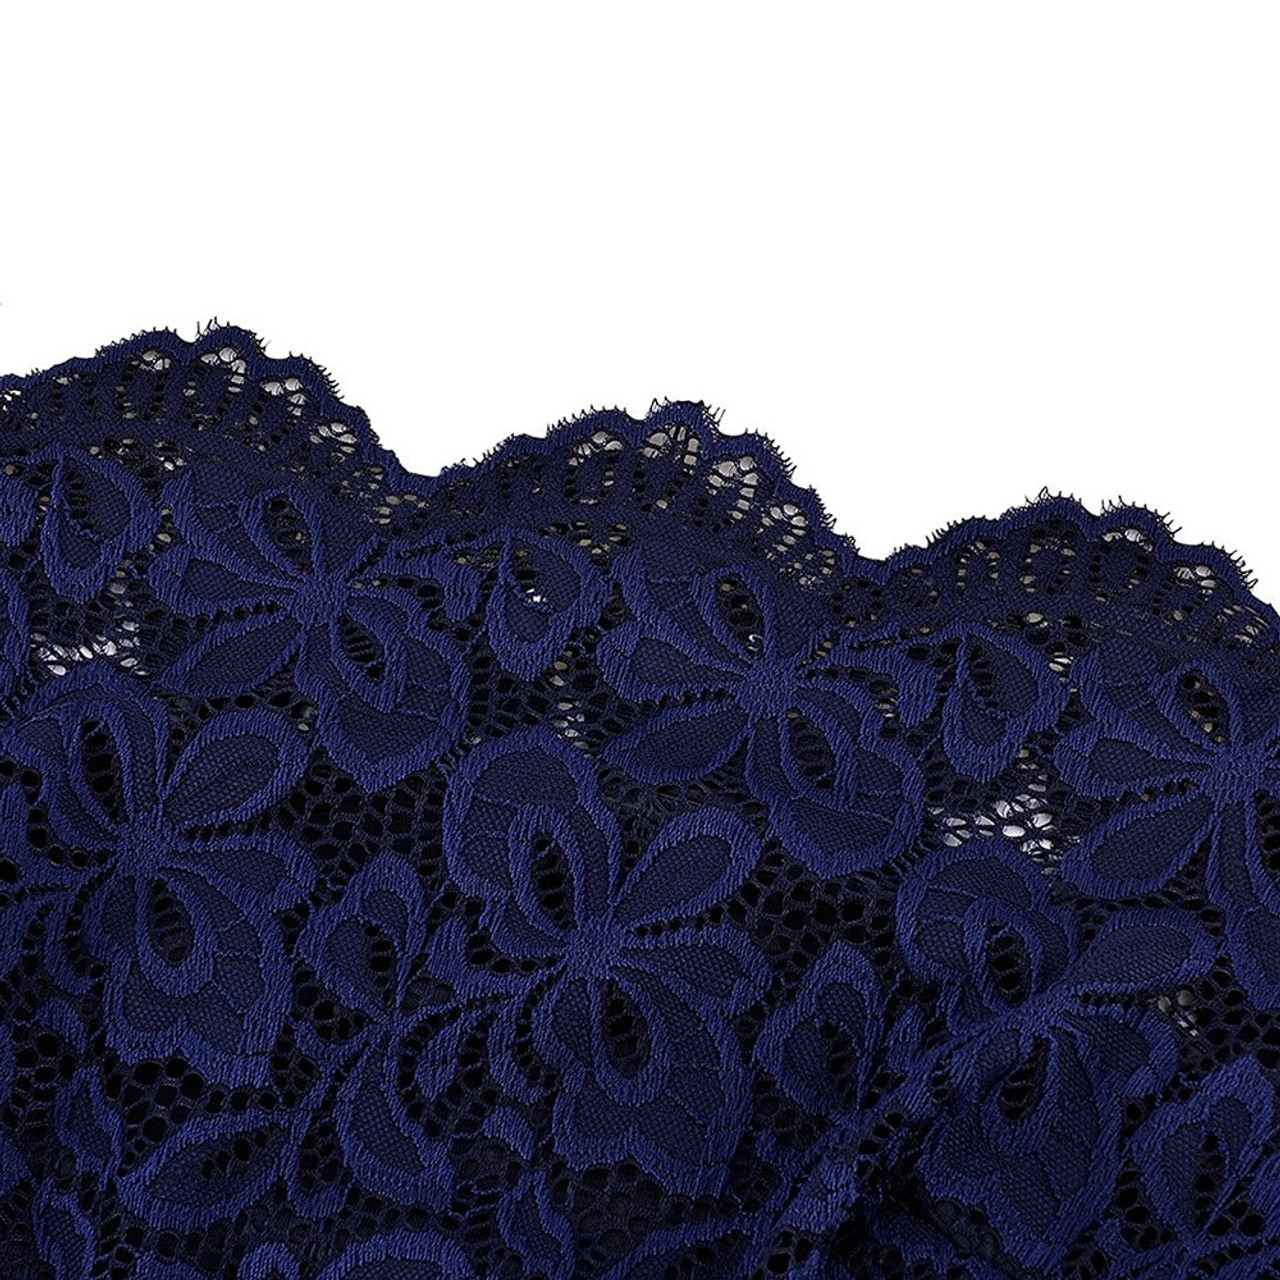 ... Cheap Navy Blue Cocktail Dresses Elegant Short Little Black Dress Lace  Off shoulder Formal Dresses Short ... 291bf3e01c11